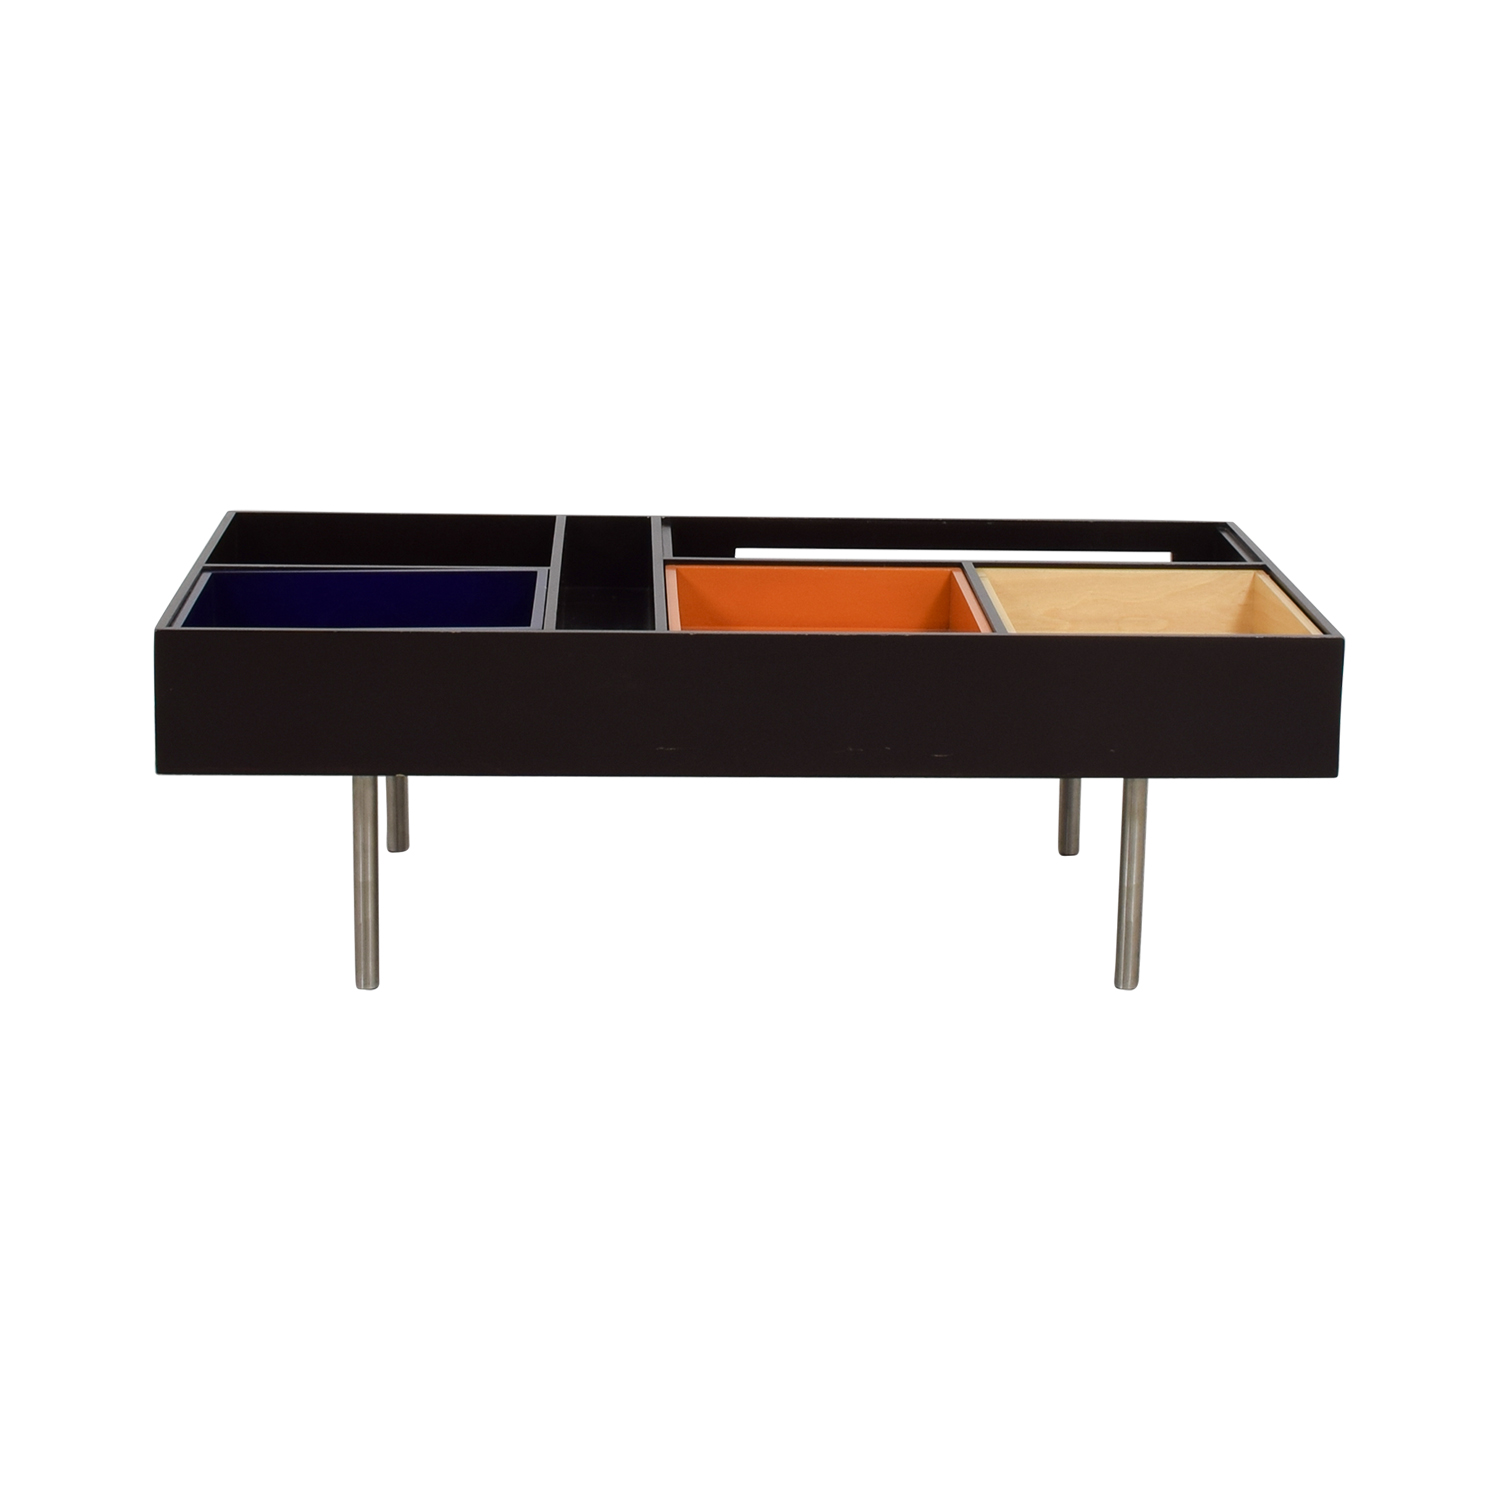 Metropolitan Design Center Metropolitan Design Center Multi-Colored Coffee Table dimensions